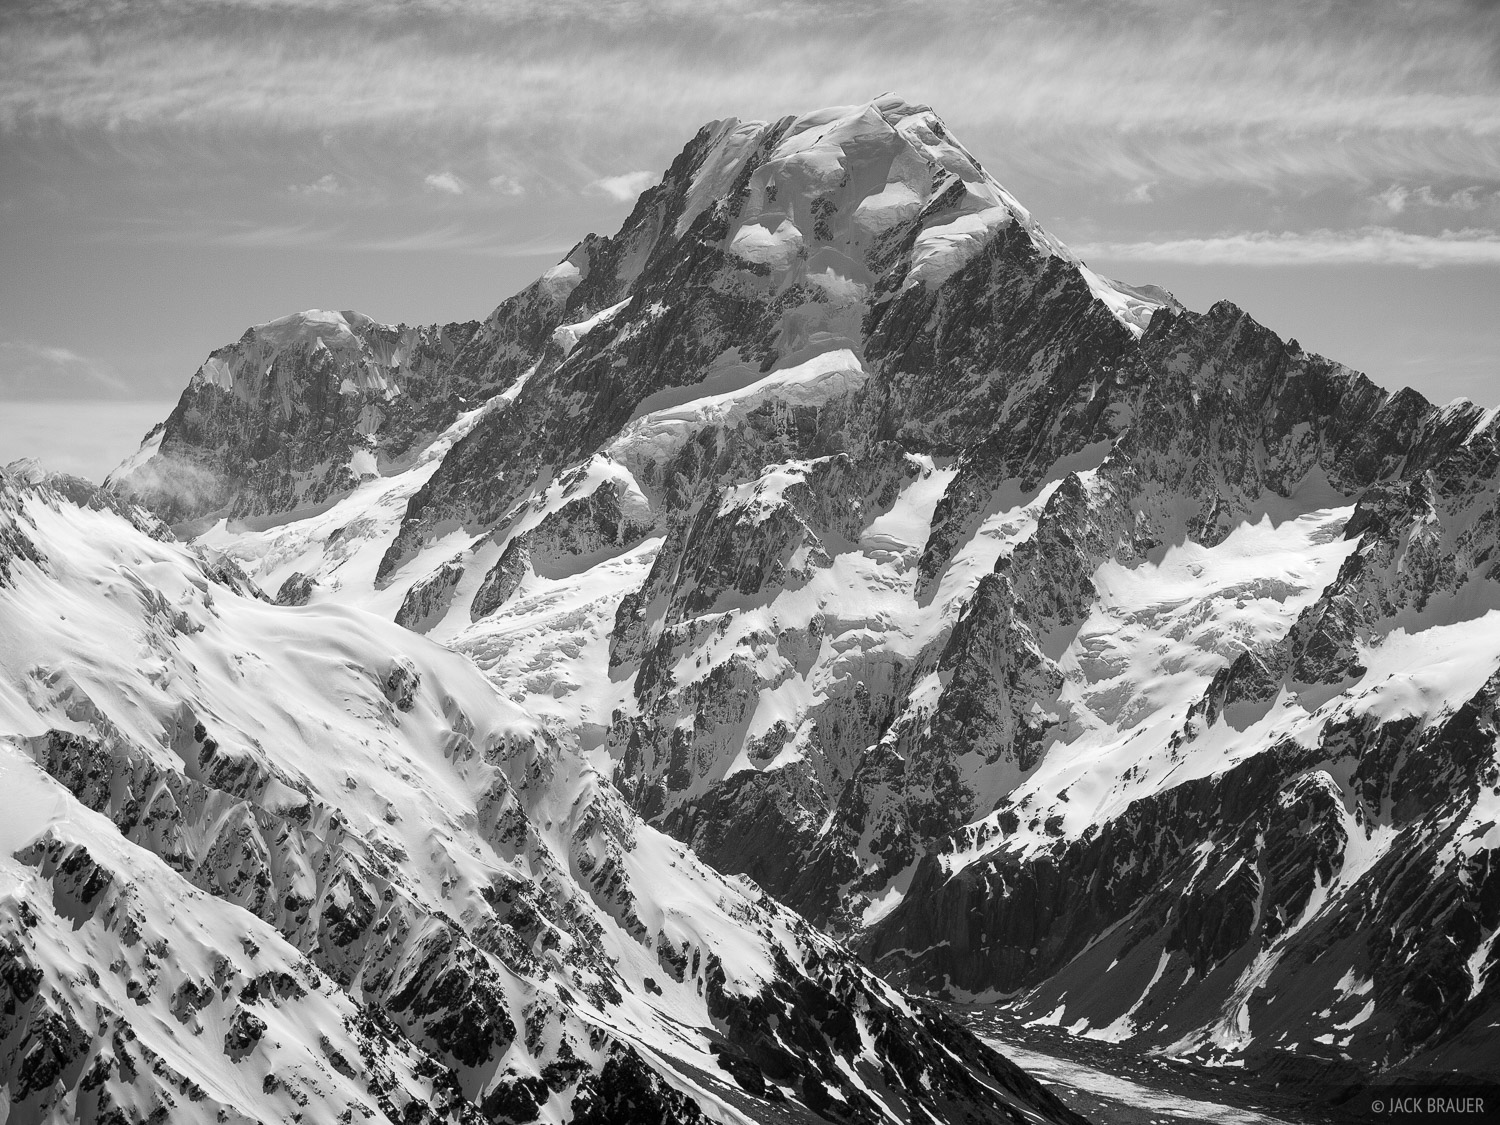 New Zealand, Aoraki, Mount Cook, bw, photo